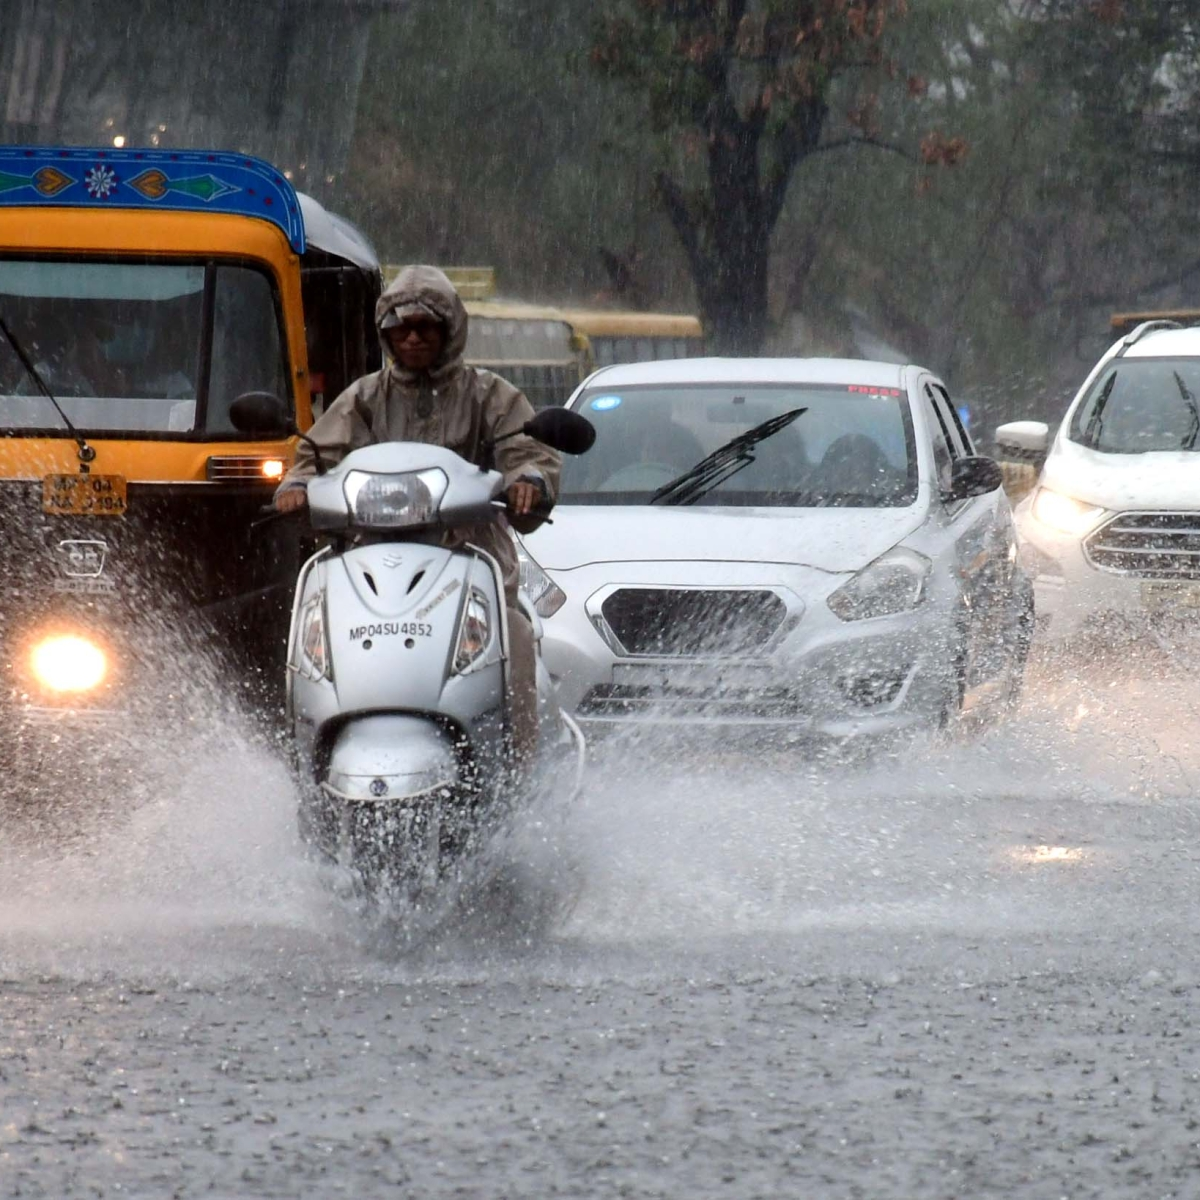 Heavy rain lashes Bhopal, inundated low lying areas, power cuts, choked drains bring discomfort